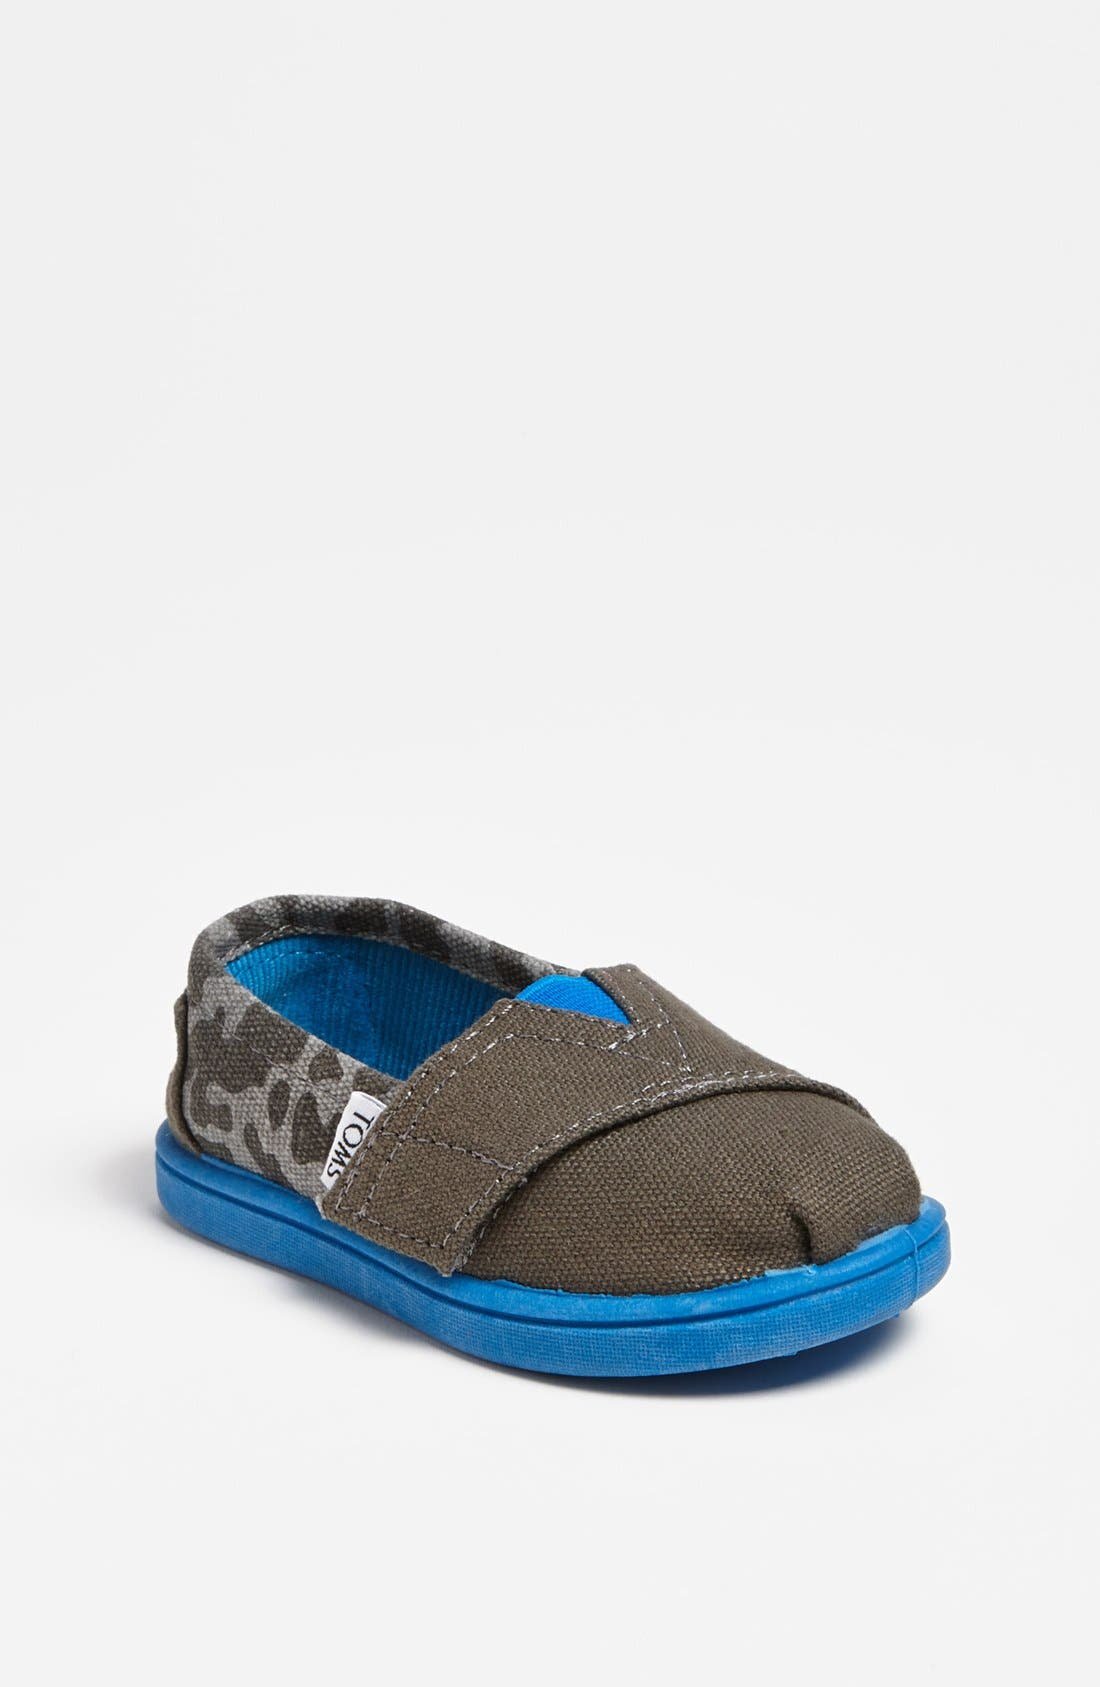 Alternate Image 1 Selected - TOMS 'Classic Tiny - Camo' Slip-On (Baby, Walker & Toddler)